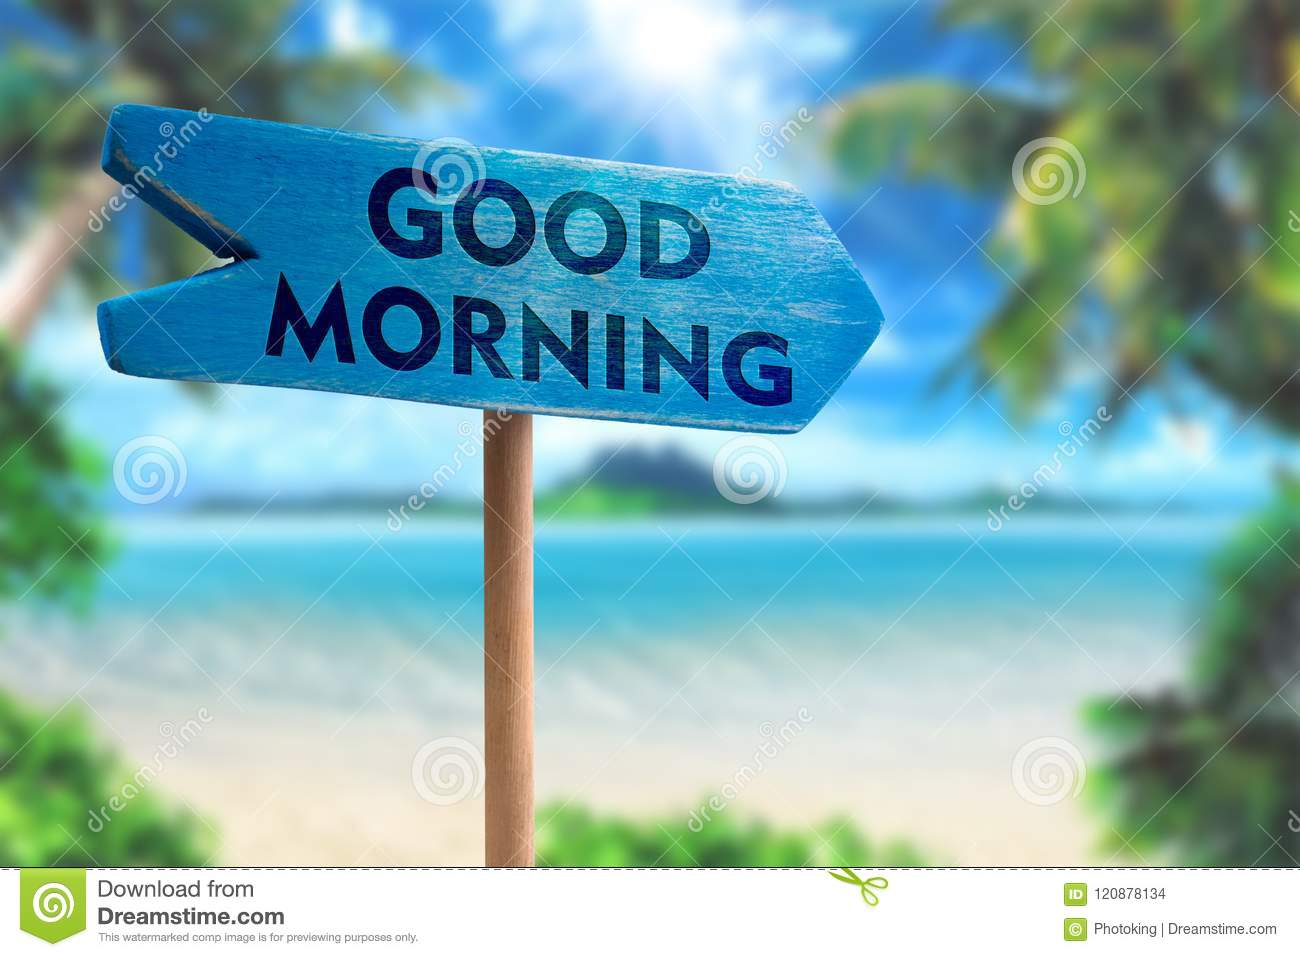 Good Morning Stock Images - Download 60,044 Royalty Free Photos